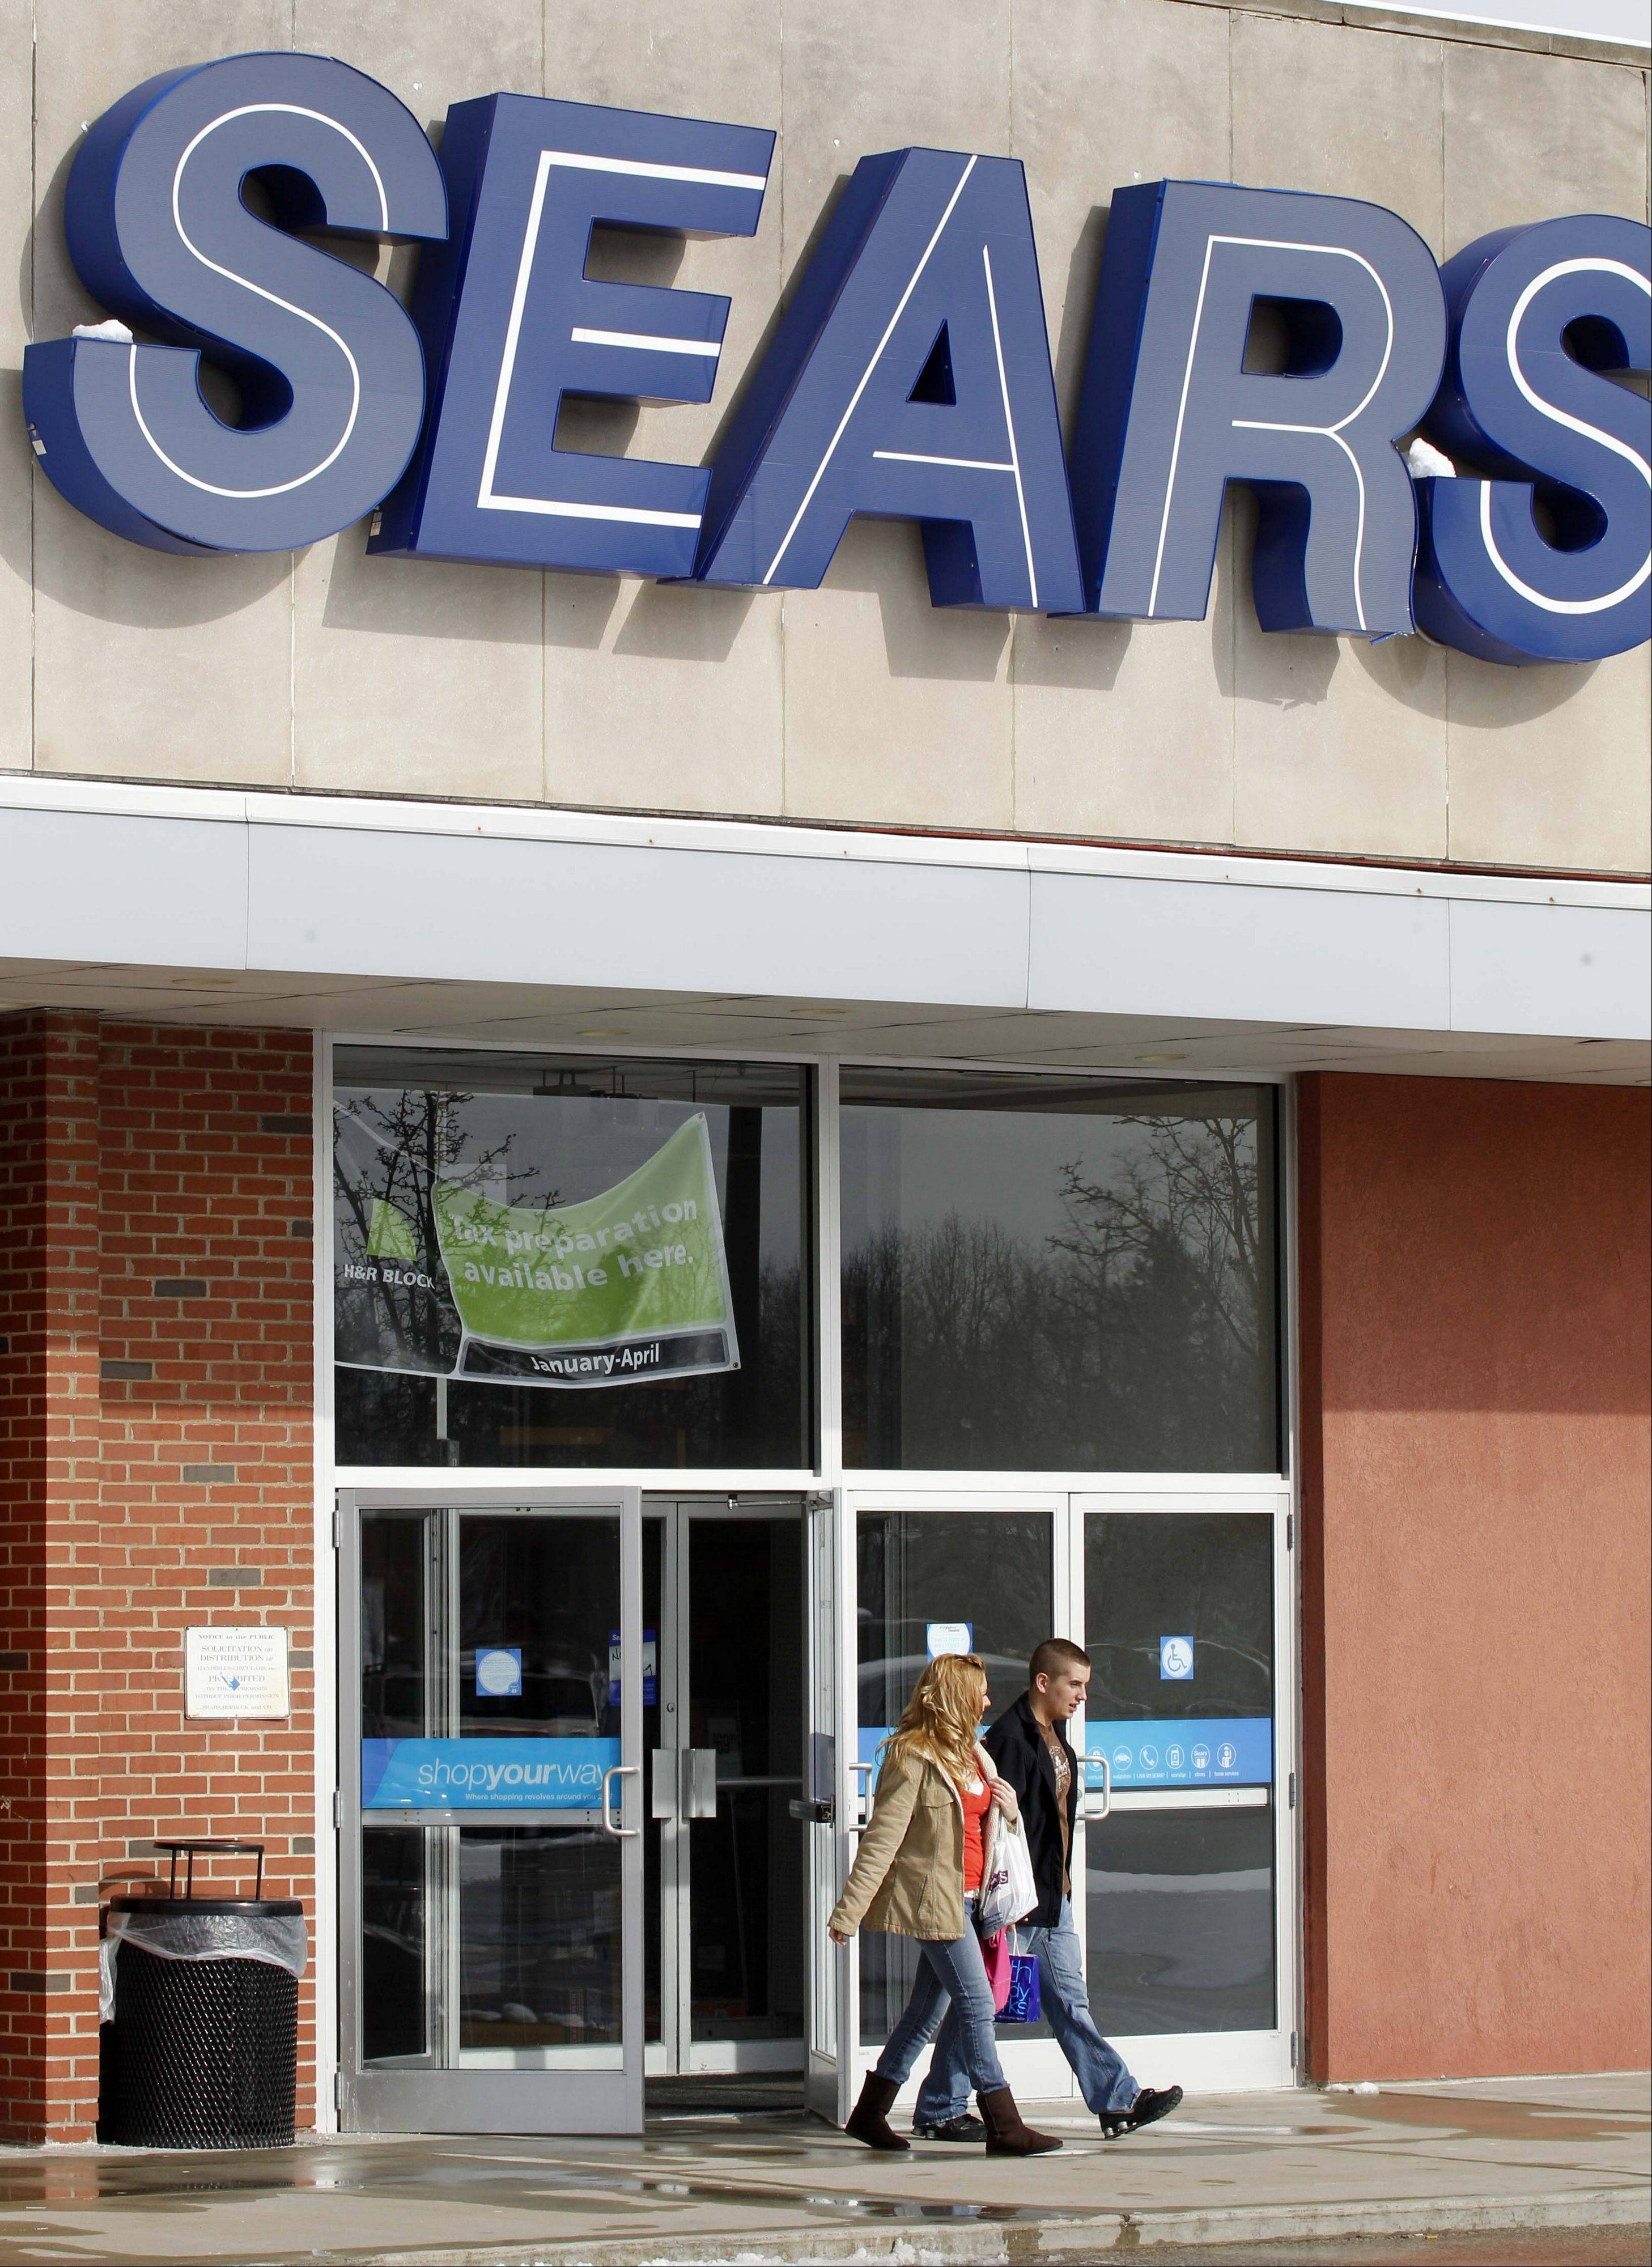 ears Hometown and Outlet Stores Inc. said Tuesday that its fourth-quarter results climbed, helped by an extra week in the period compared with a year ago.